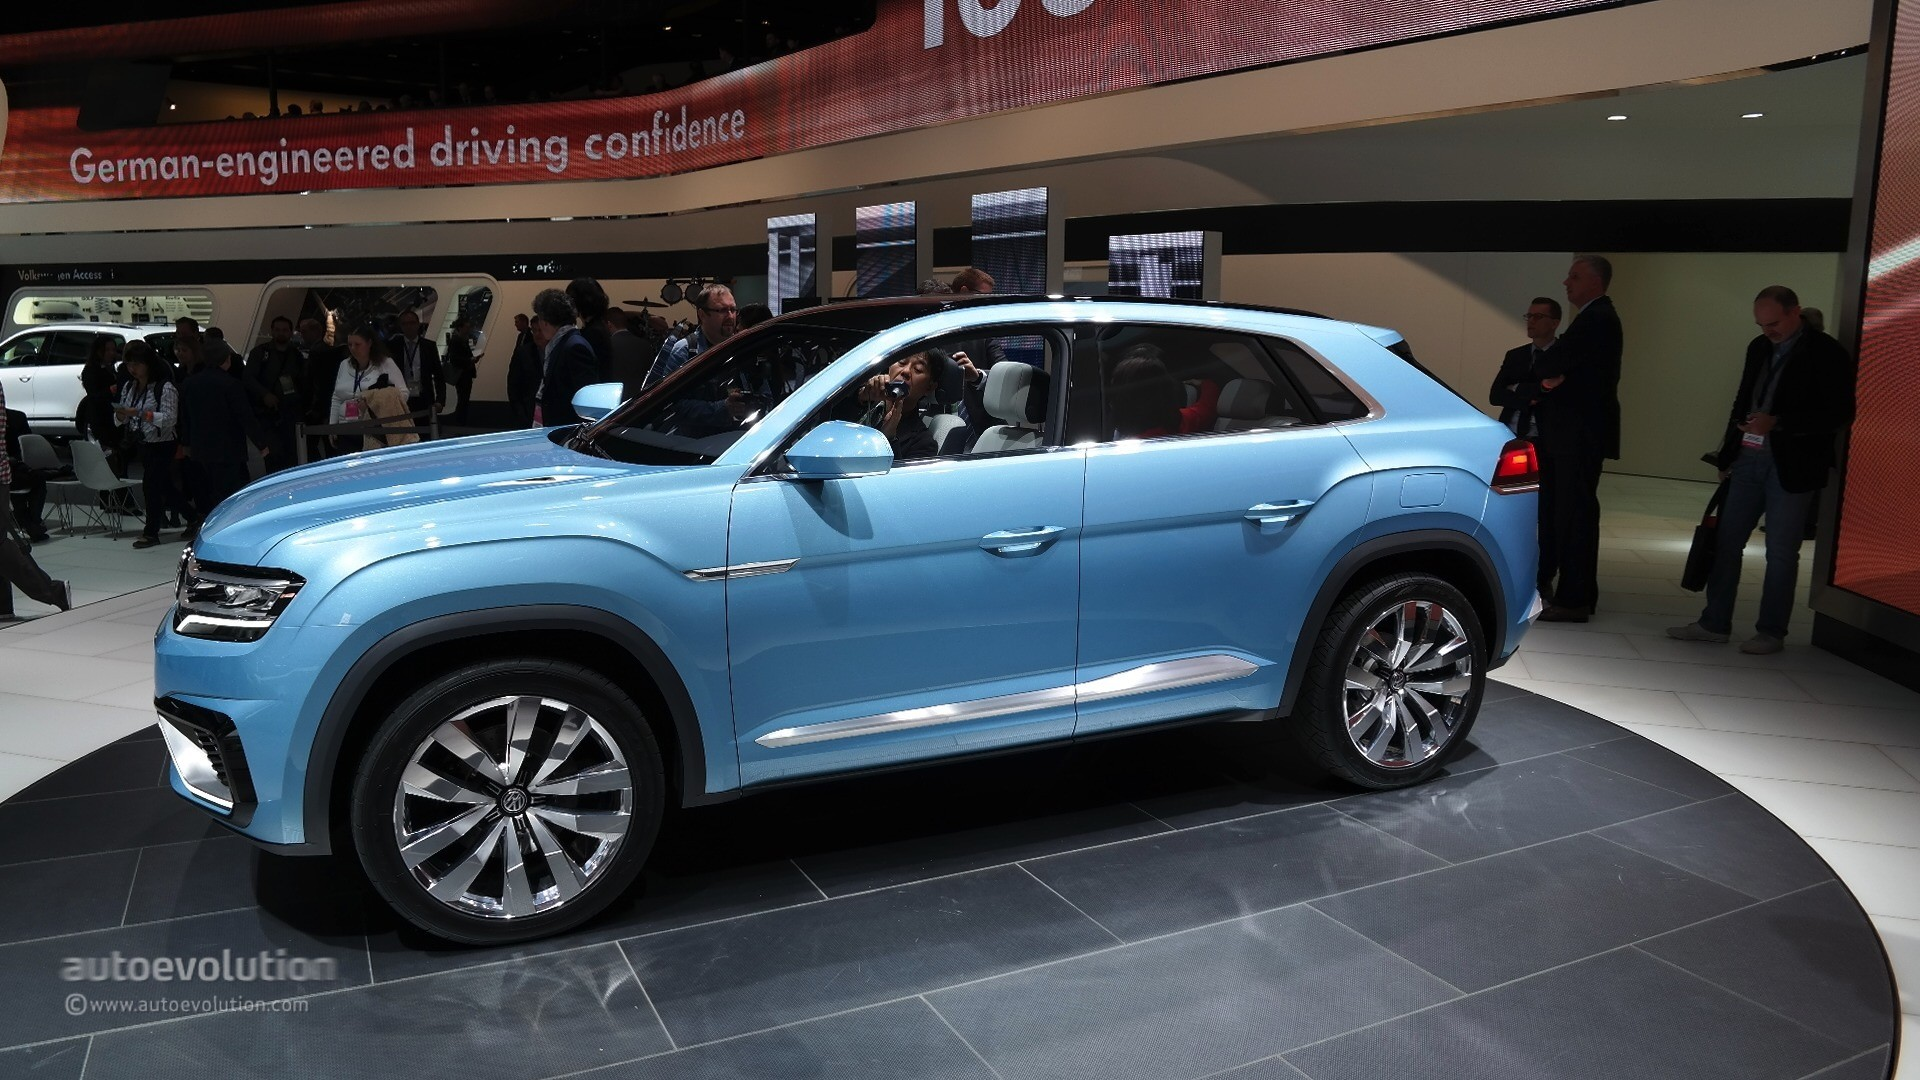 volkswagen cross coupe gte concept up close and personal at detroit auto show live photos. Black Bedroom Furniture Sets. Home Design Ideas